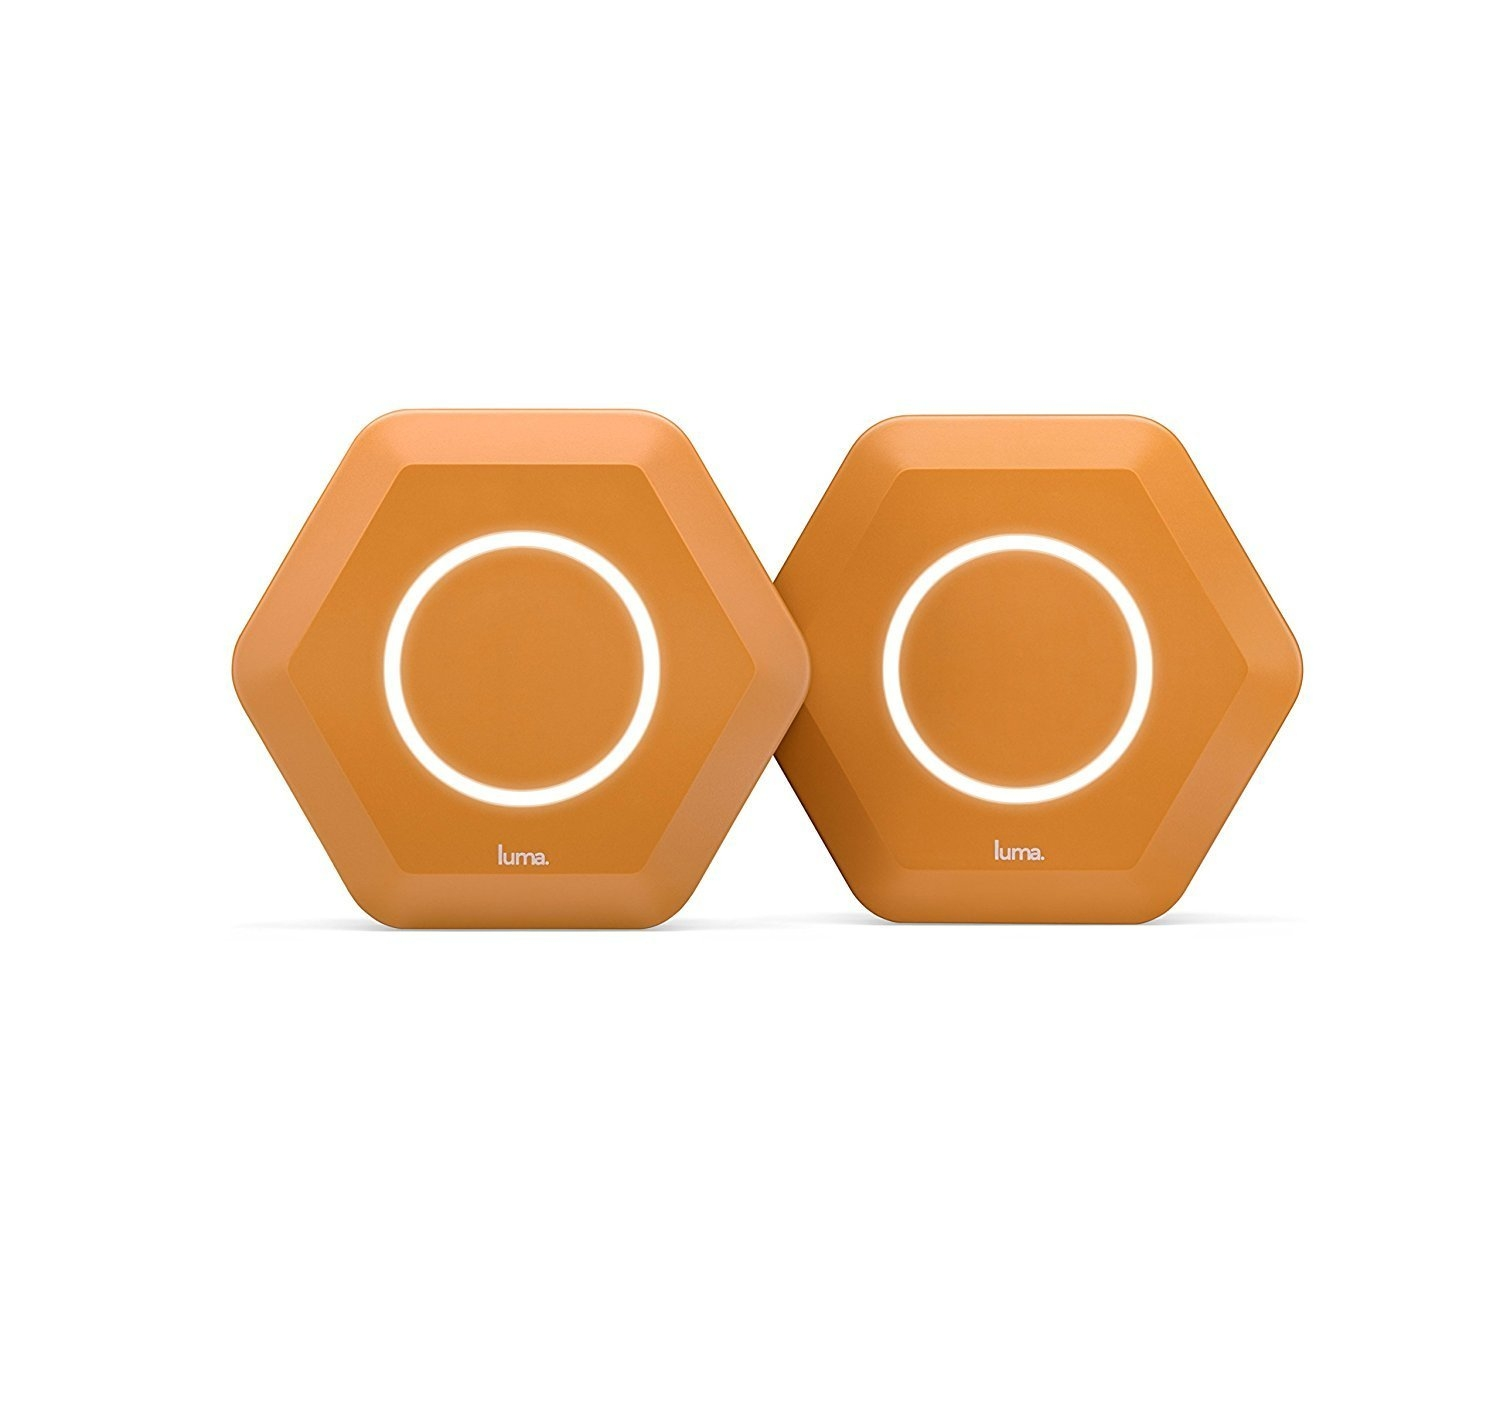 Luma Home WiFi System (Orange 2 Pack) – Replaces WiFi